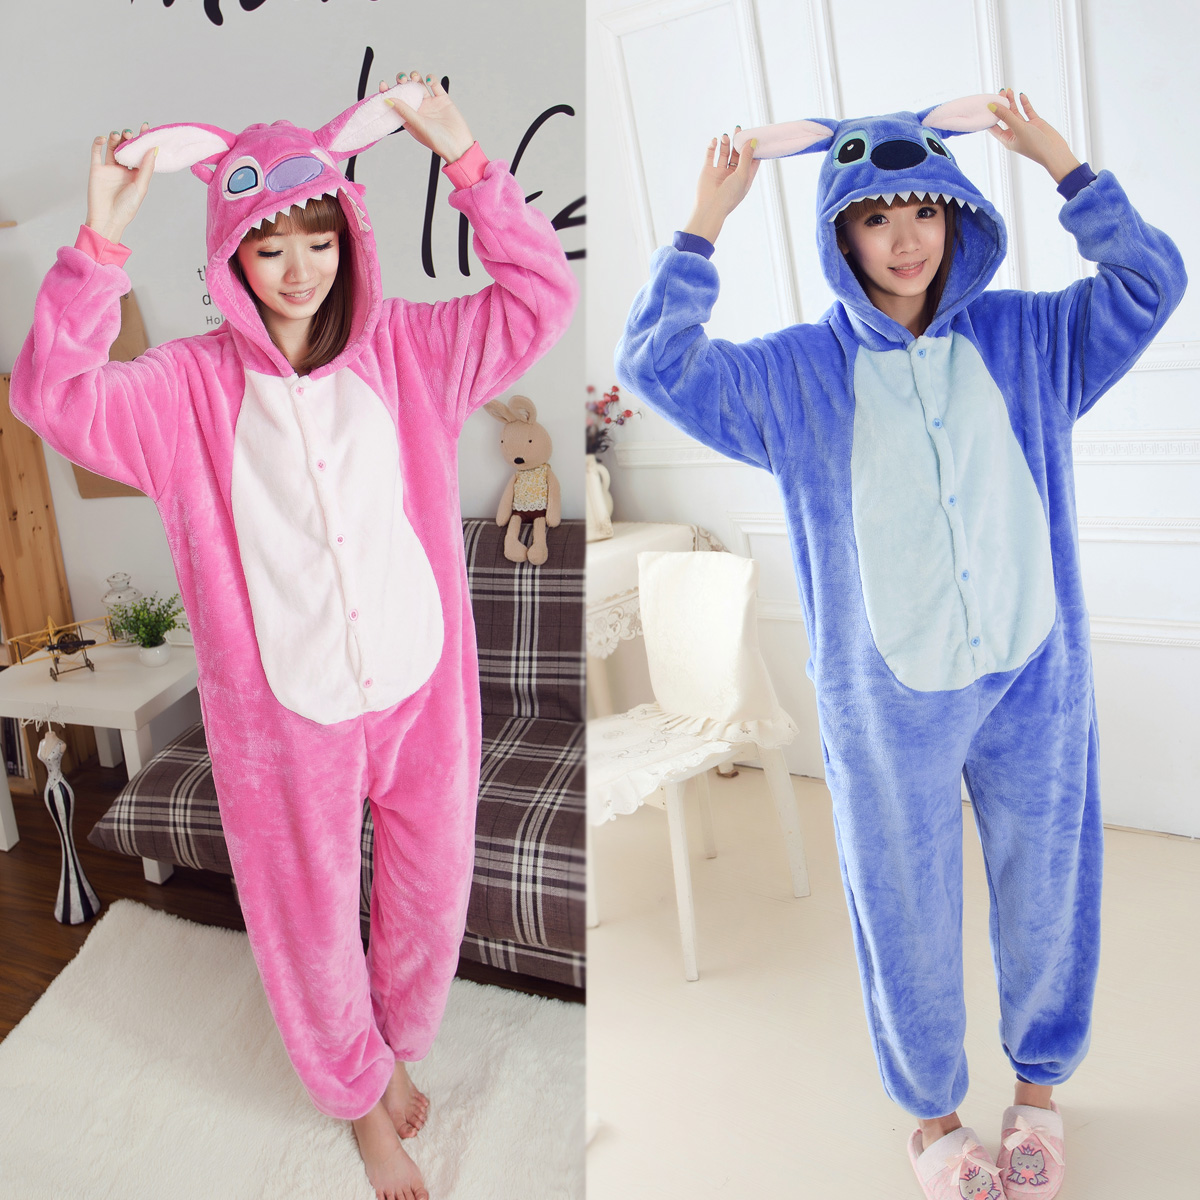 unisex men women adult cute pajamas cosplay costume animal onesie stitch sleepwear japan pajamas birthday halloween gift s xl in mens costumes from novelty